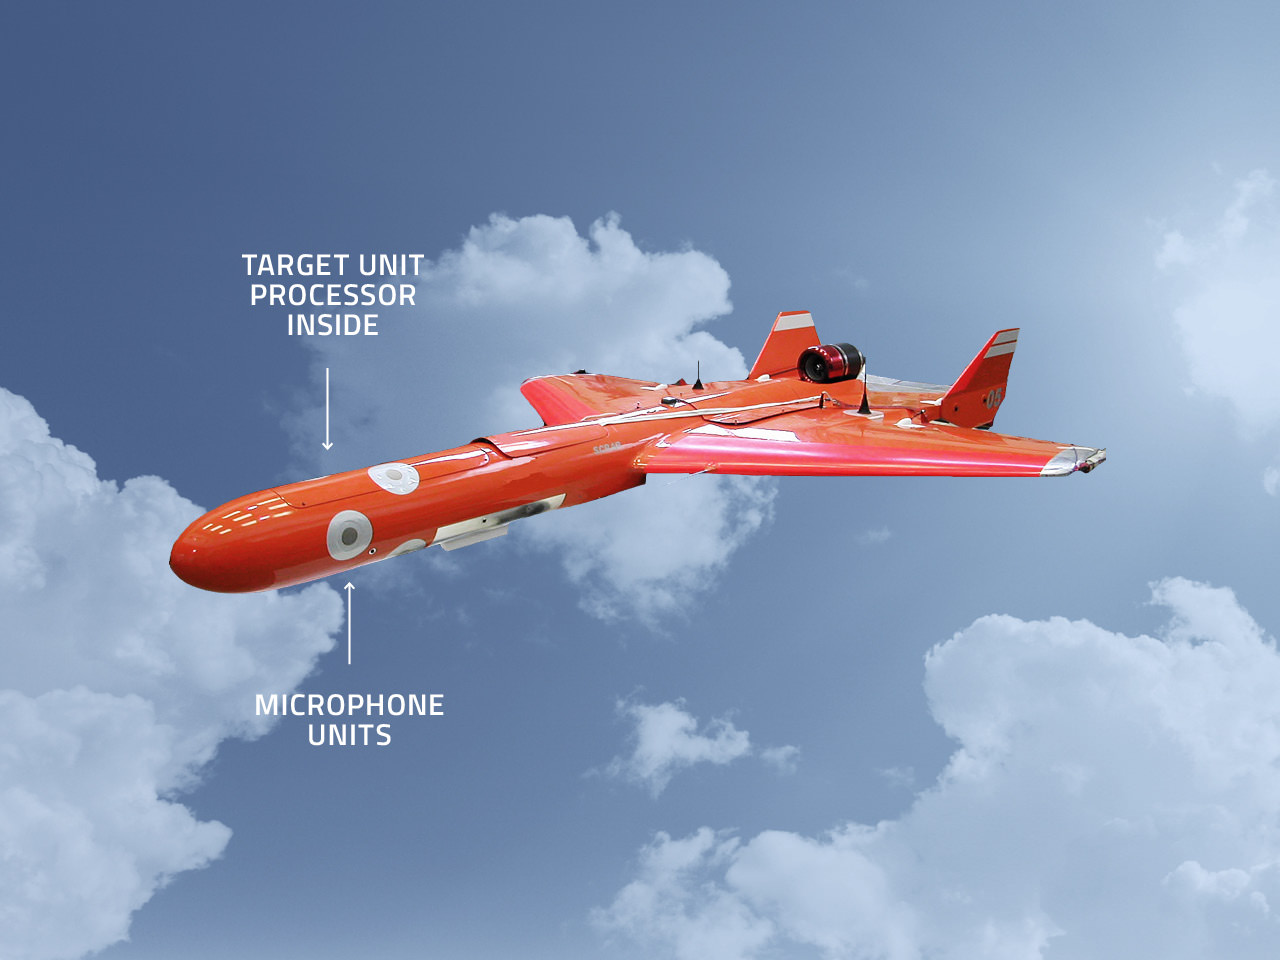 Integration target drone miss distance indicator 135